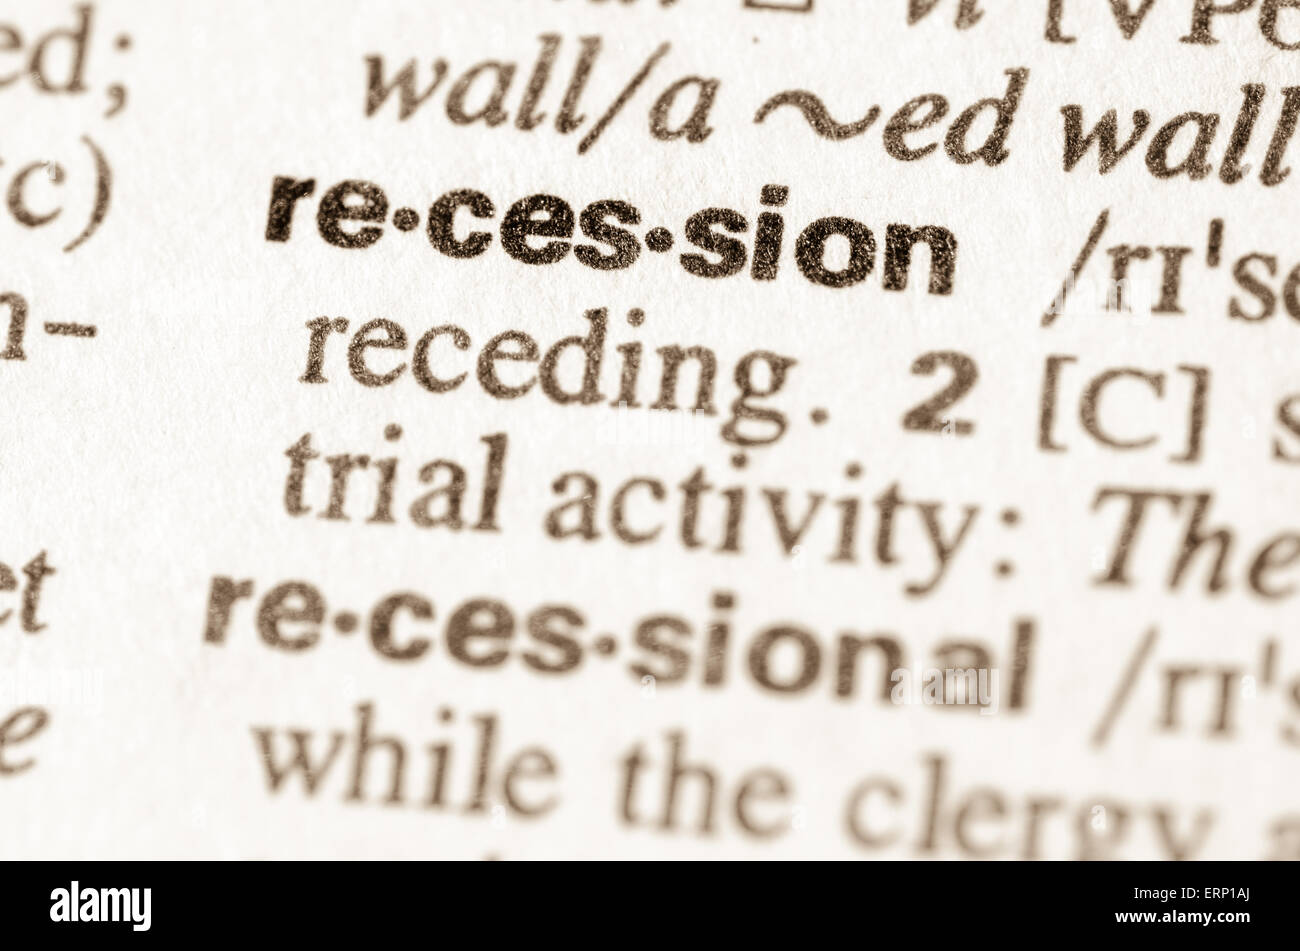 definition word recession in dictionary stock photos & definition